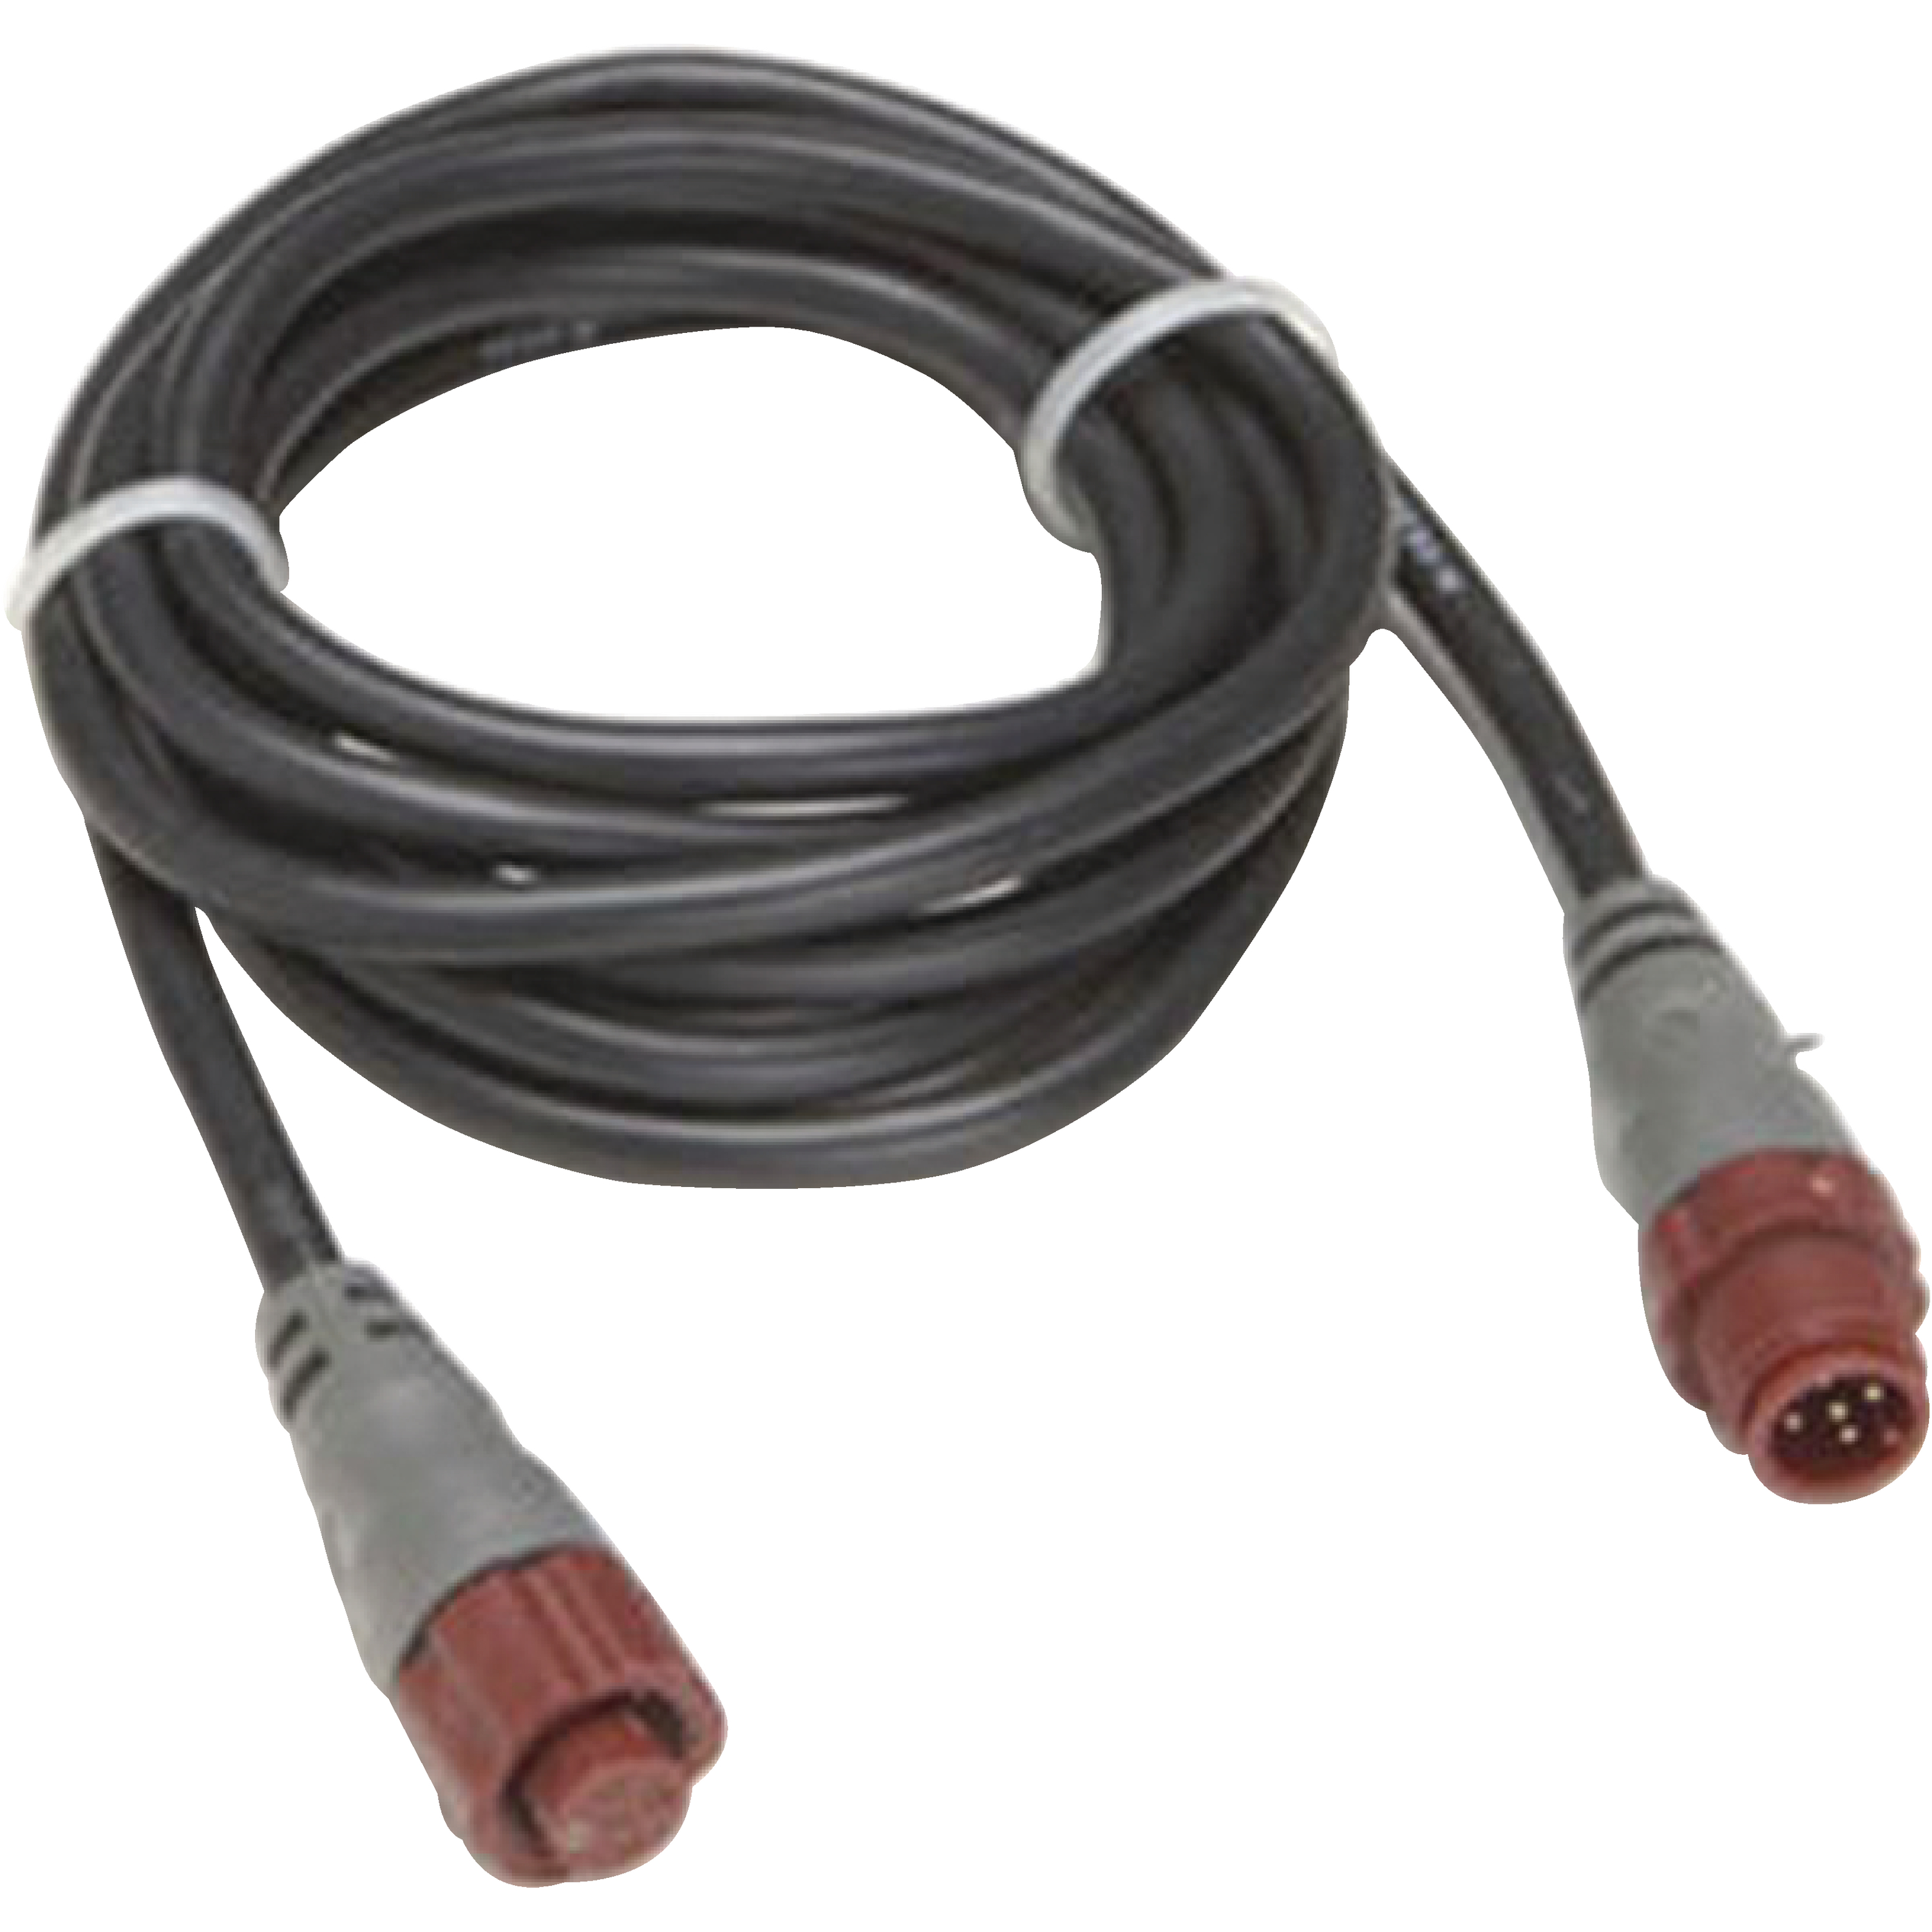 Lowrance 000-0119-88 N2KEXT-2RD 2' Network Extension Cable